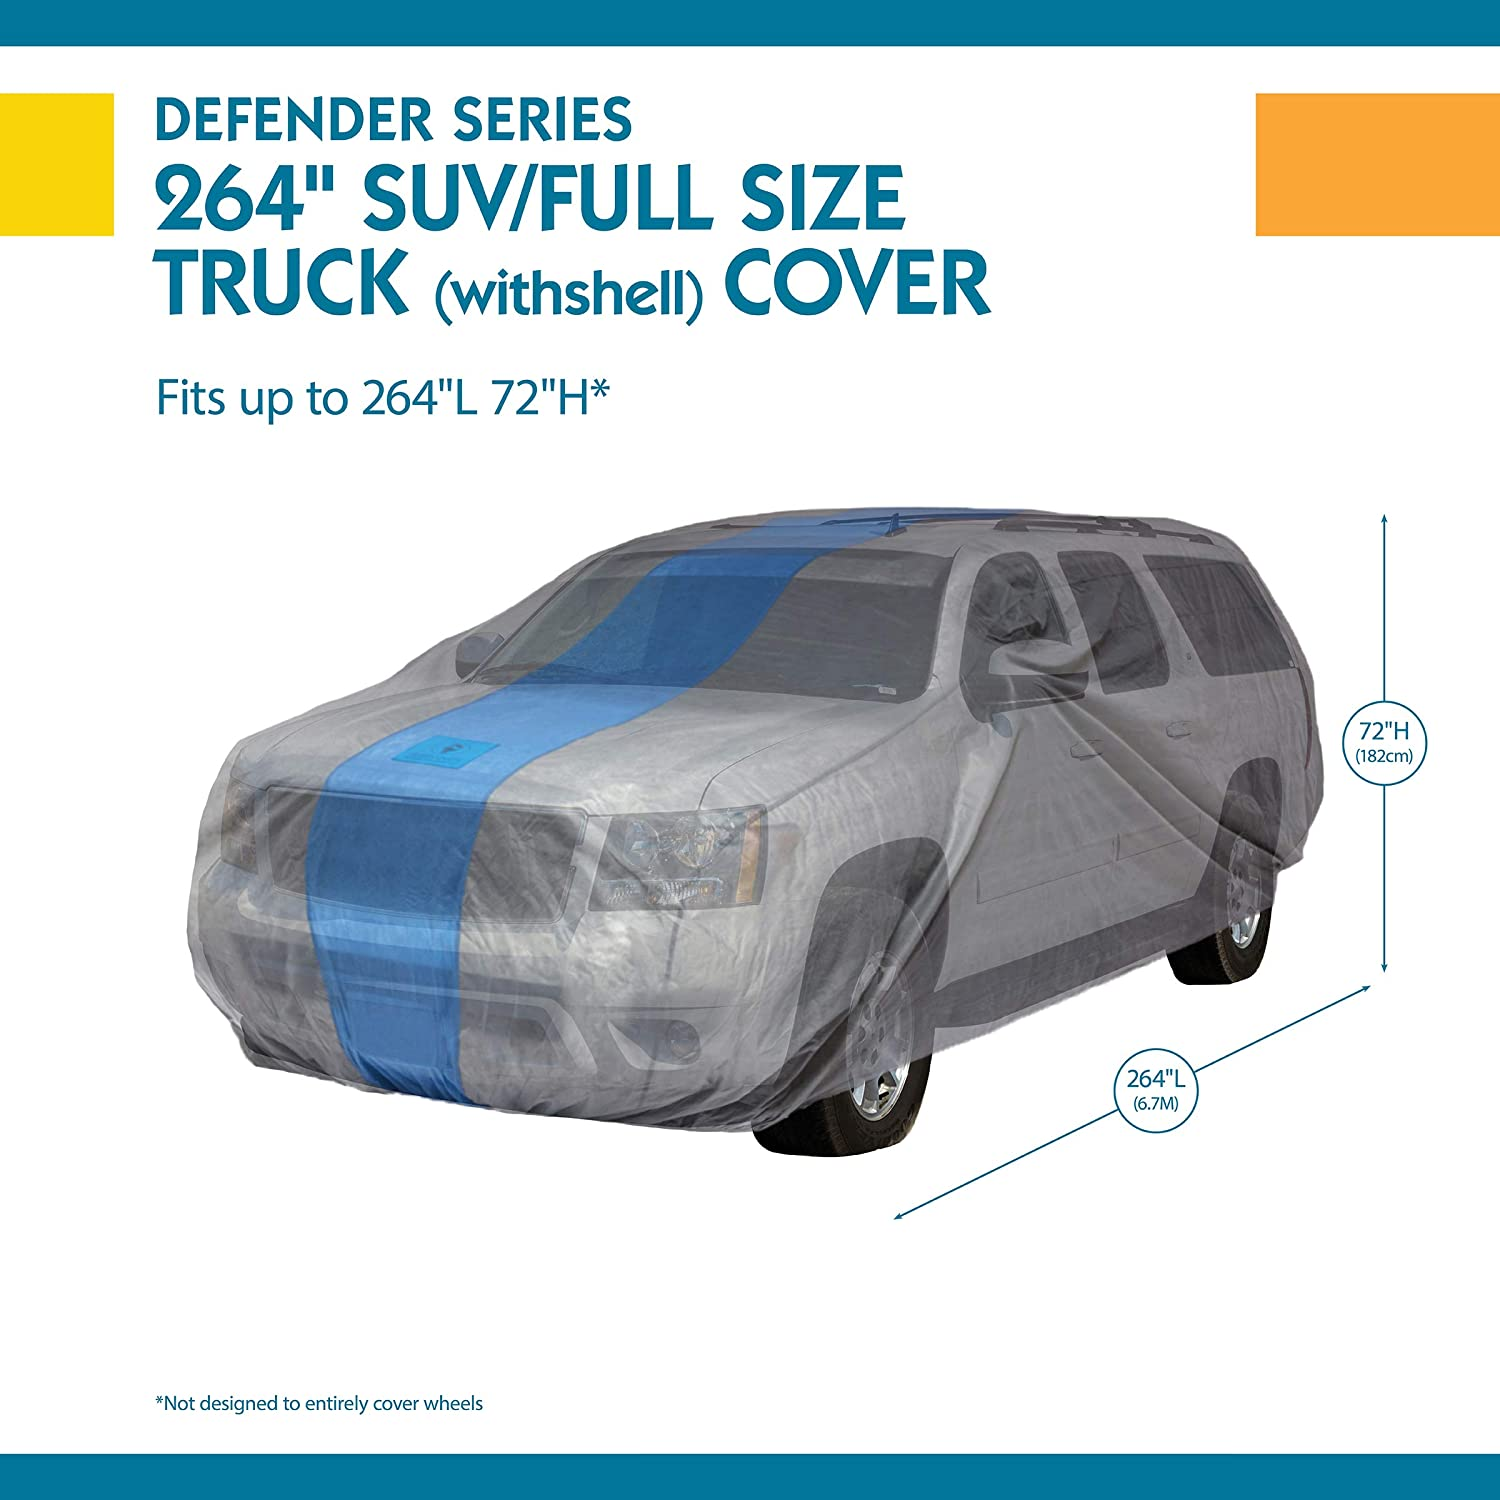 Duck Covers Defender SUV Cover for Jeep Wrangler//SUVs Equivalent Up to 13 6